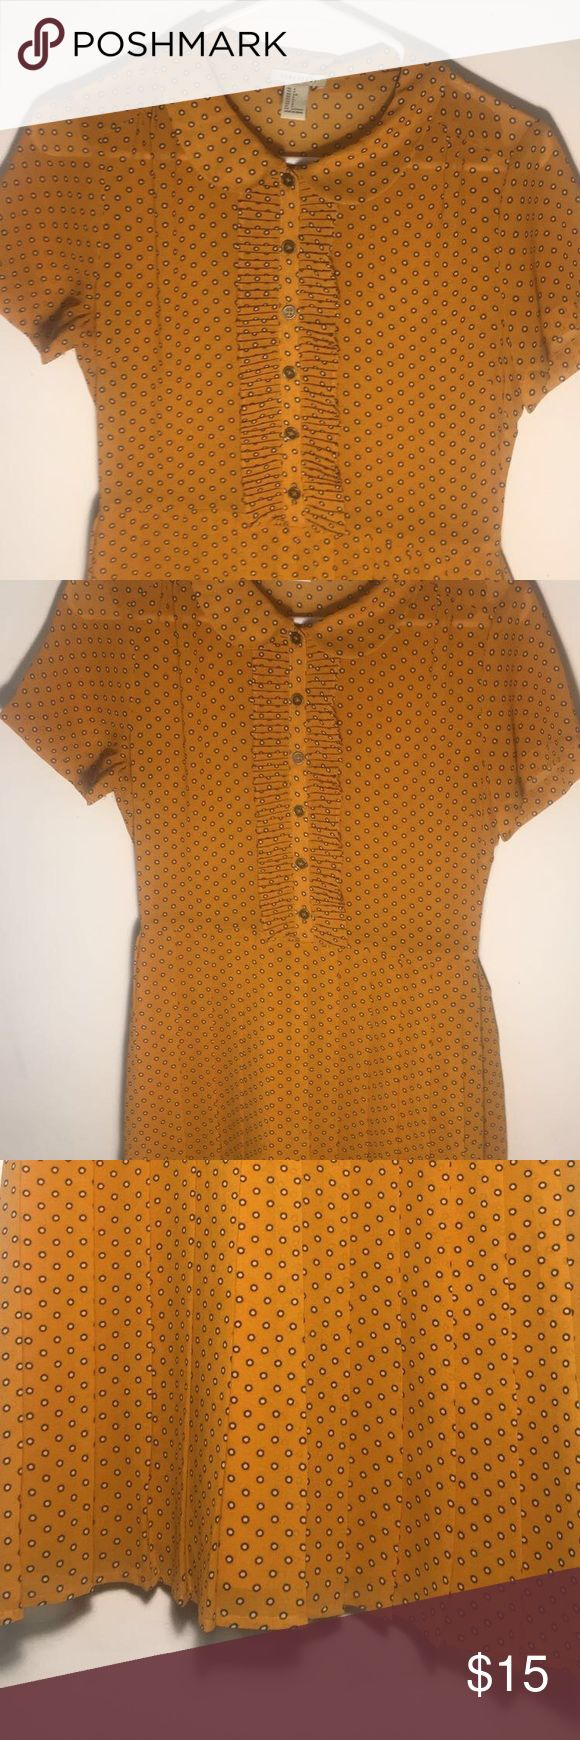 Peter Pan Collar Marigold Dress Pleated dress with Peter Pan collar. Included zipper on the side. Detailed with dark gold buttons and black/white polka dots. Lightly warn. Easy to wear formally or casually! Forever 21 Dresses